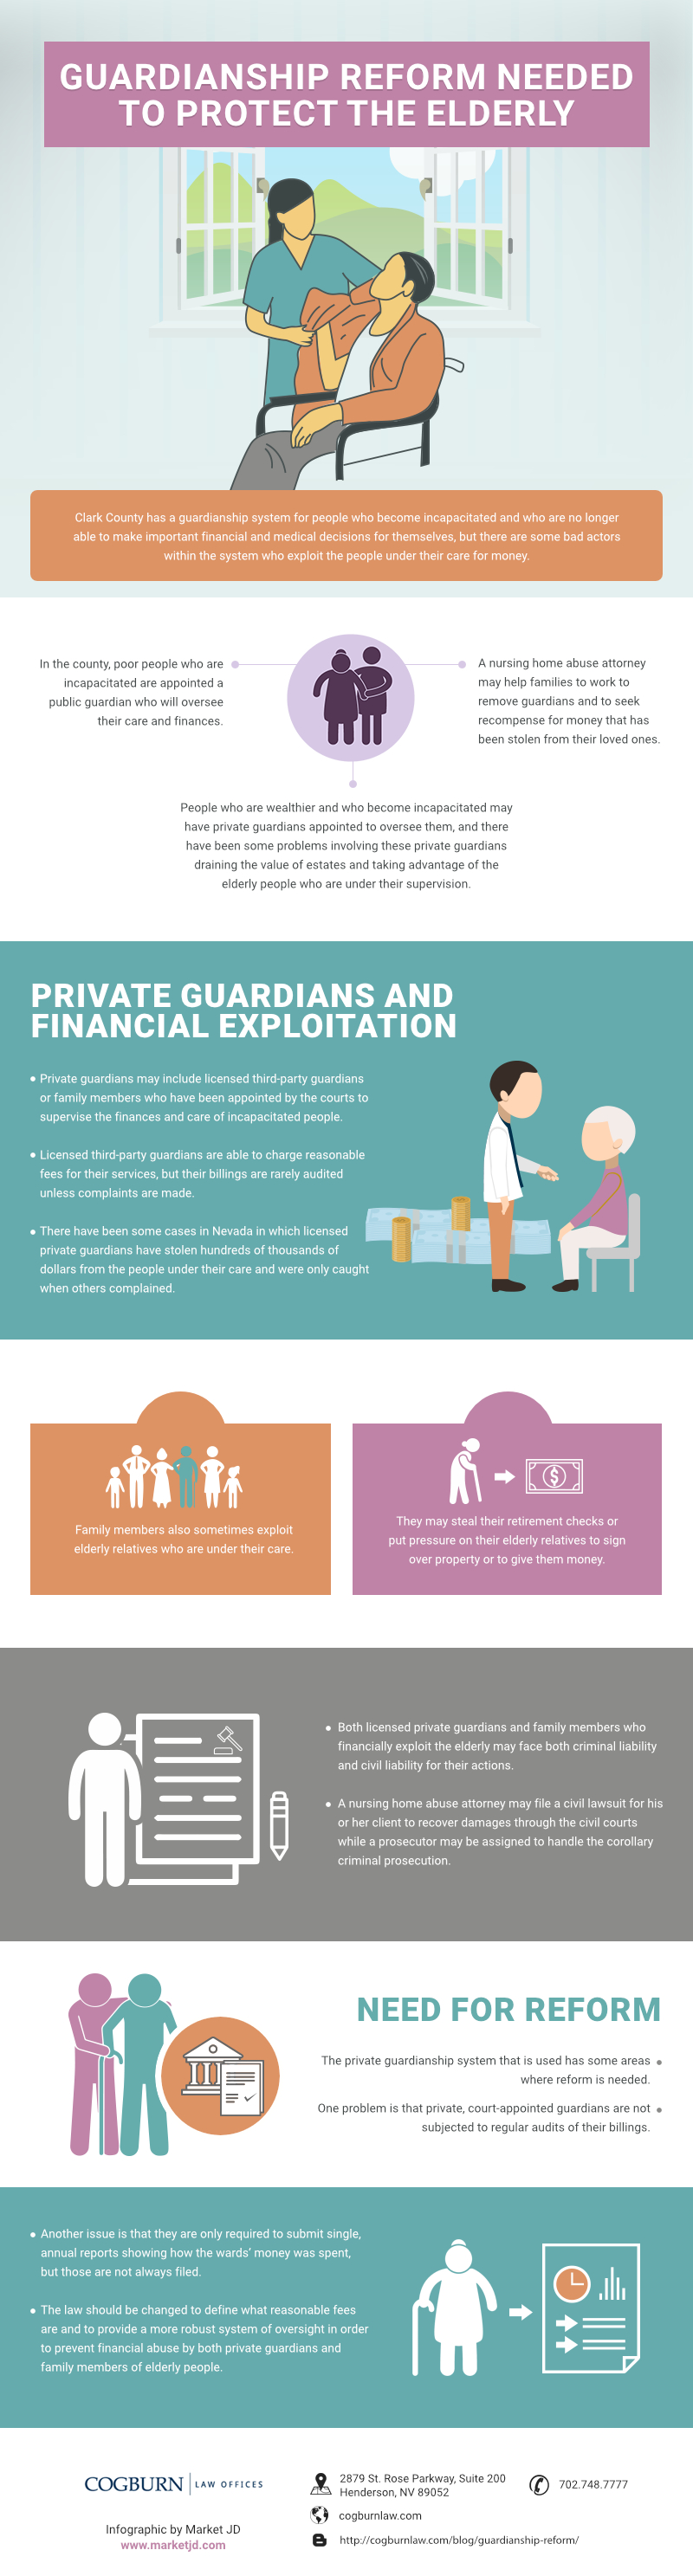 infographic_Guardianship Reform Needed to Protect the Elderly